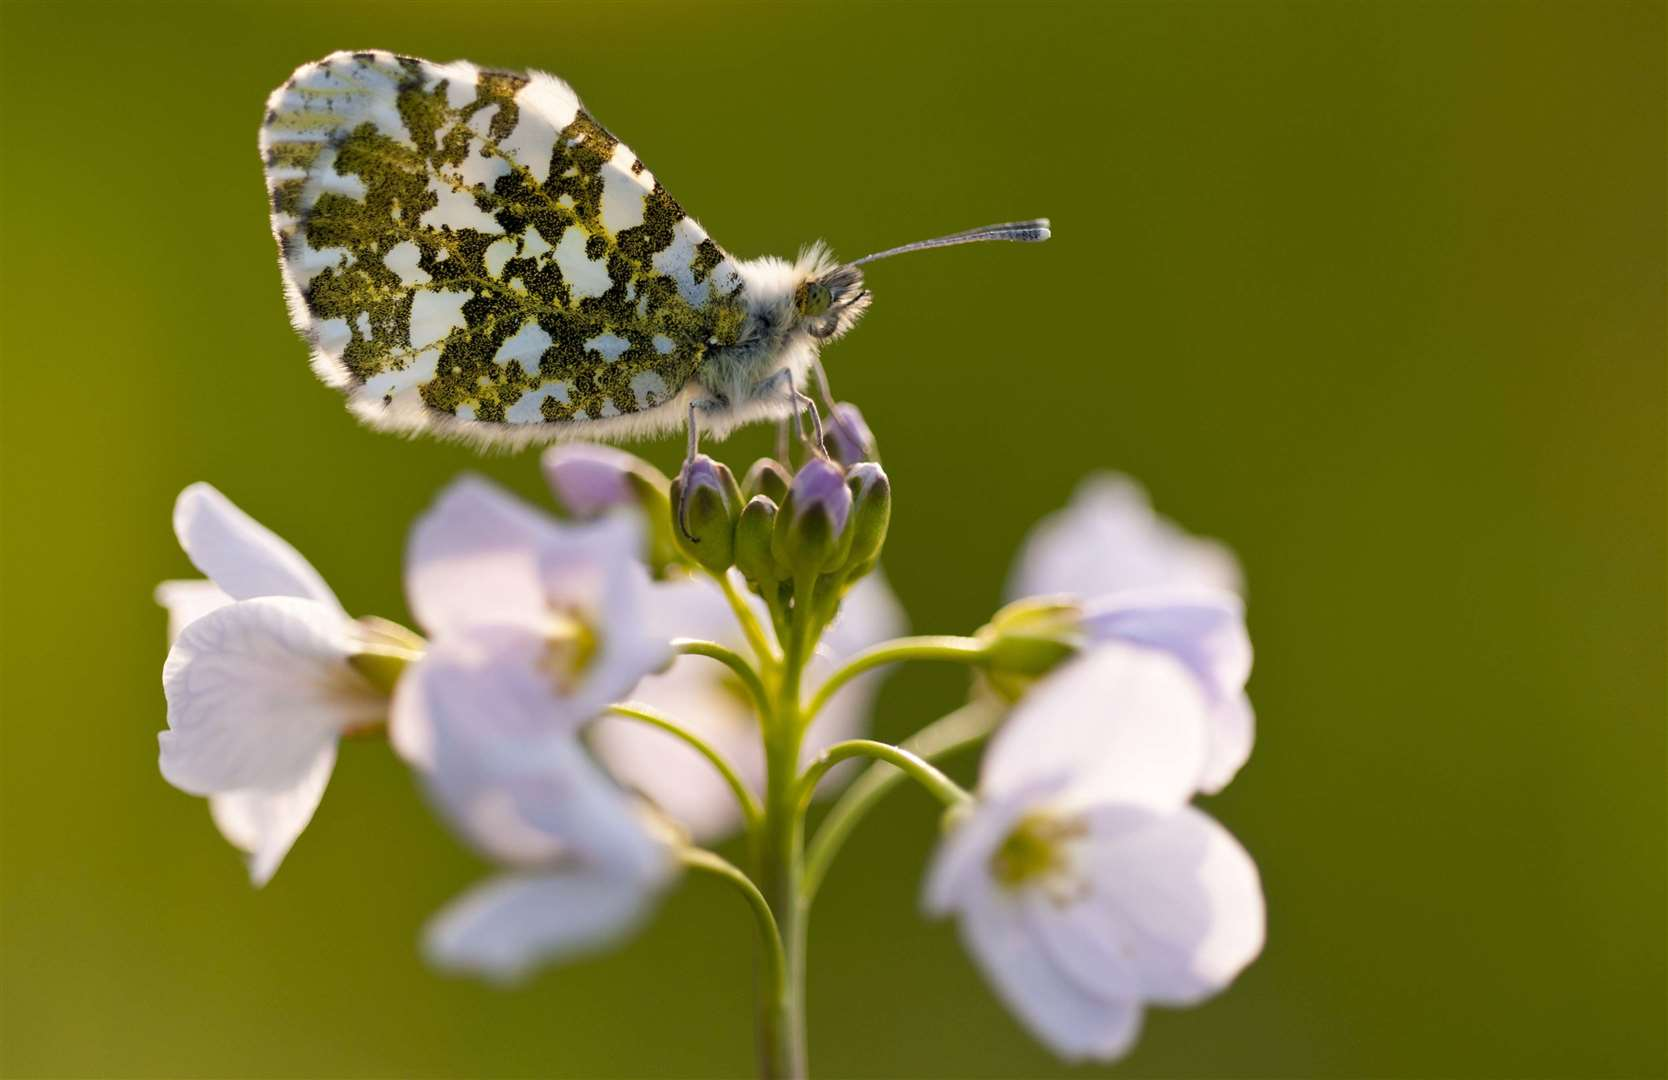 Plants can encourage caterpillars and so butterflies like the Orange Tip butterfly Picture: Ross Hoddinott